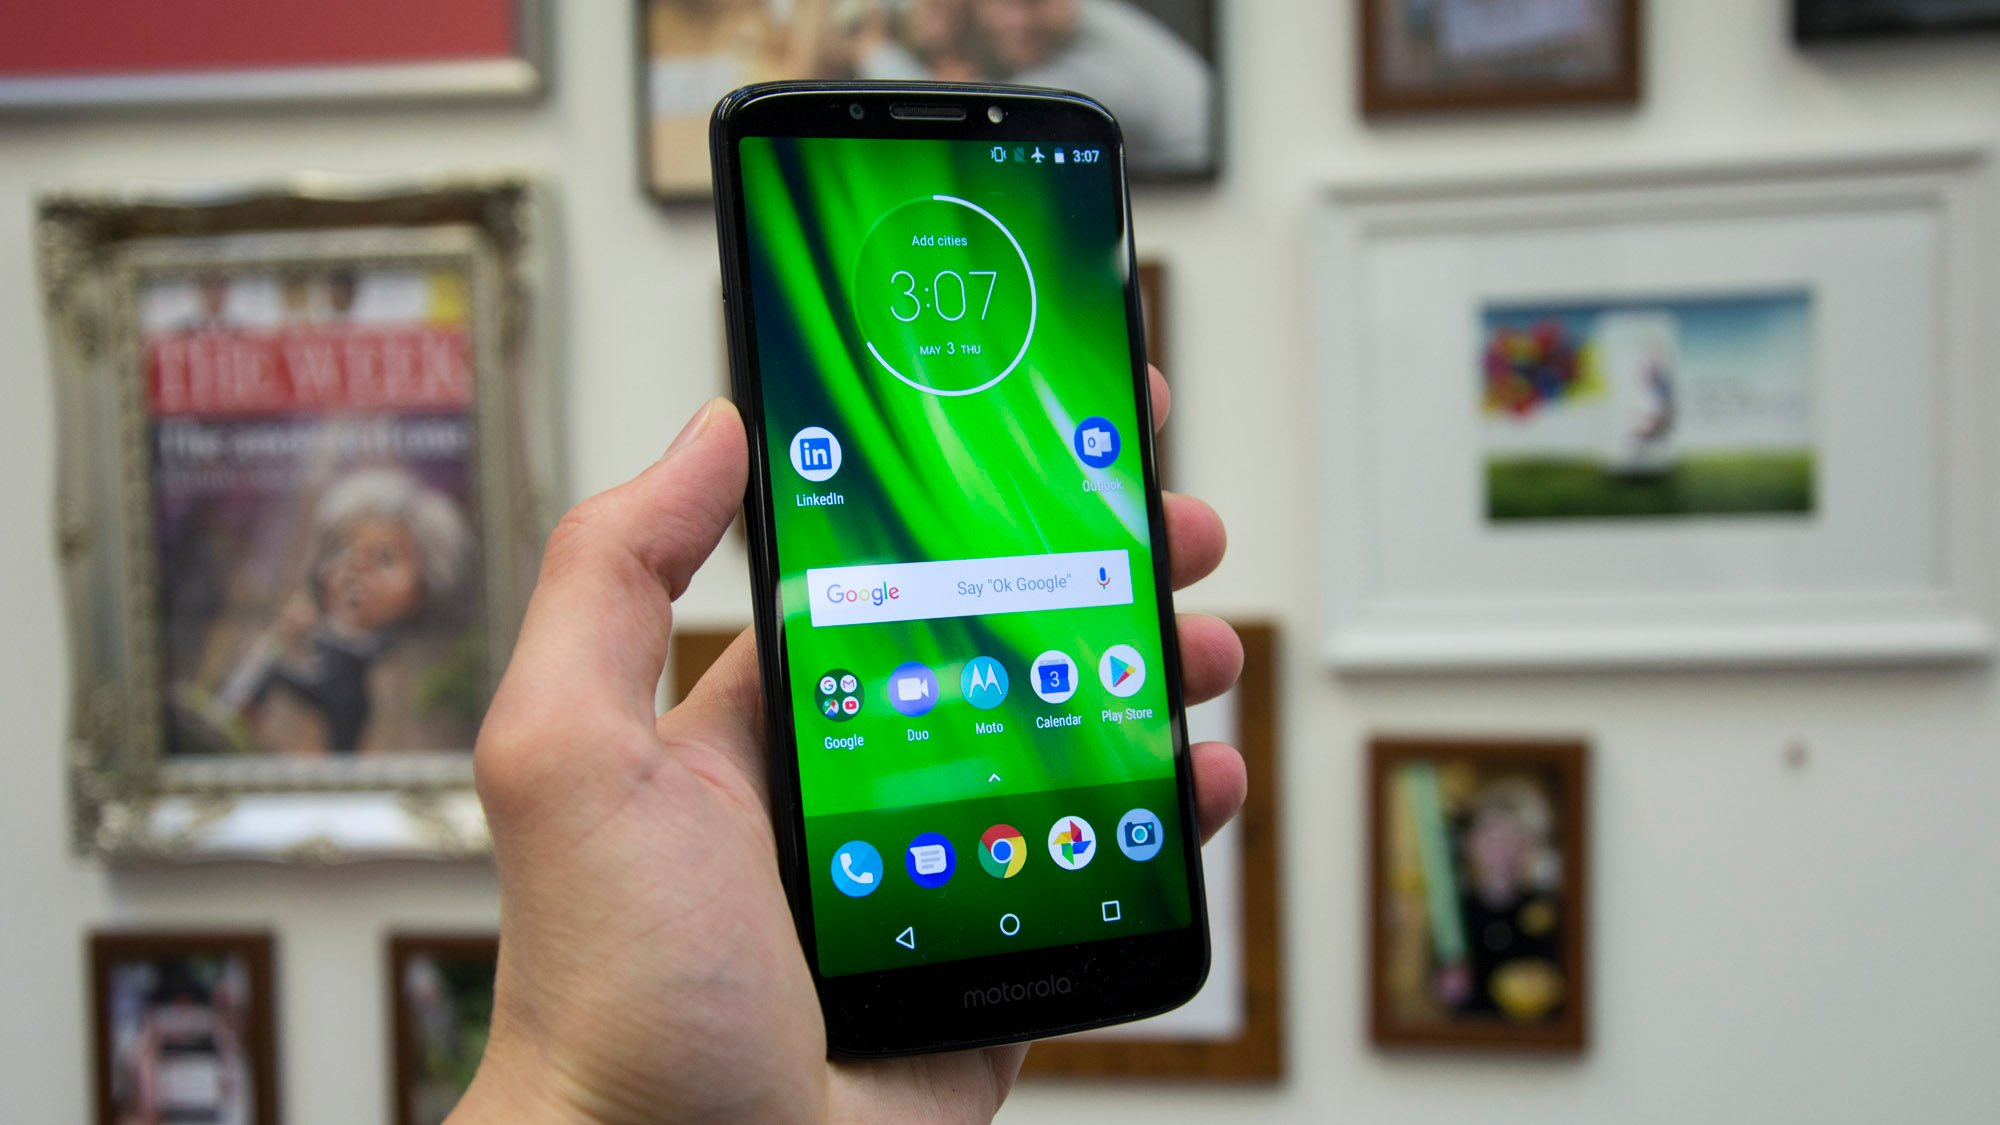 Motorola Moto G6 Play review: Return of the King | Expert